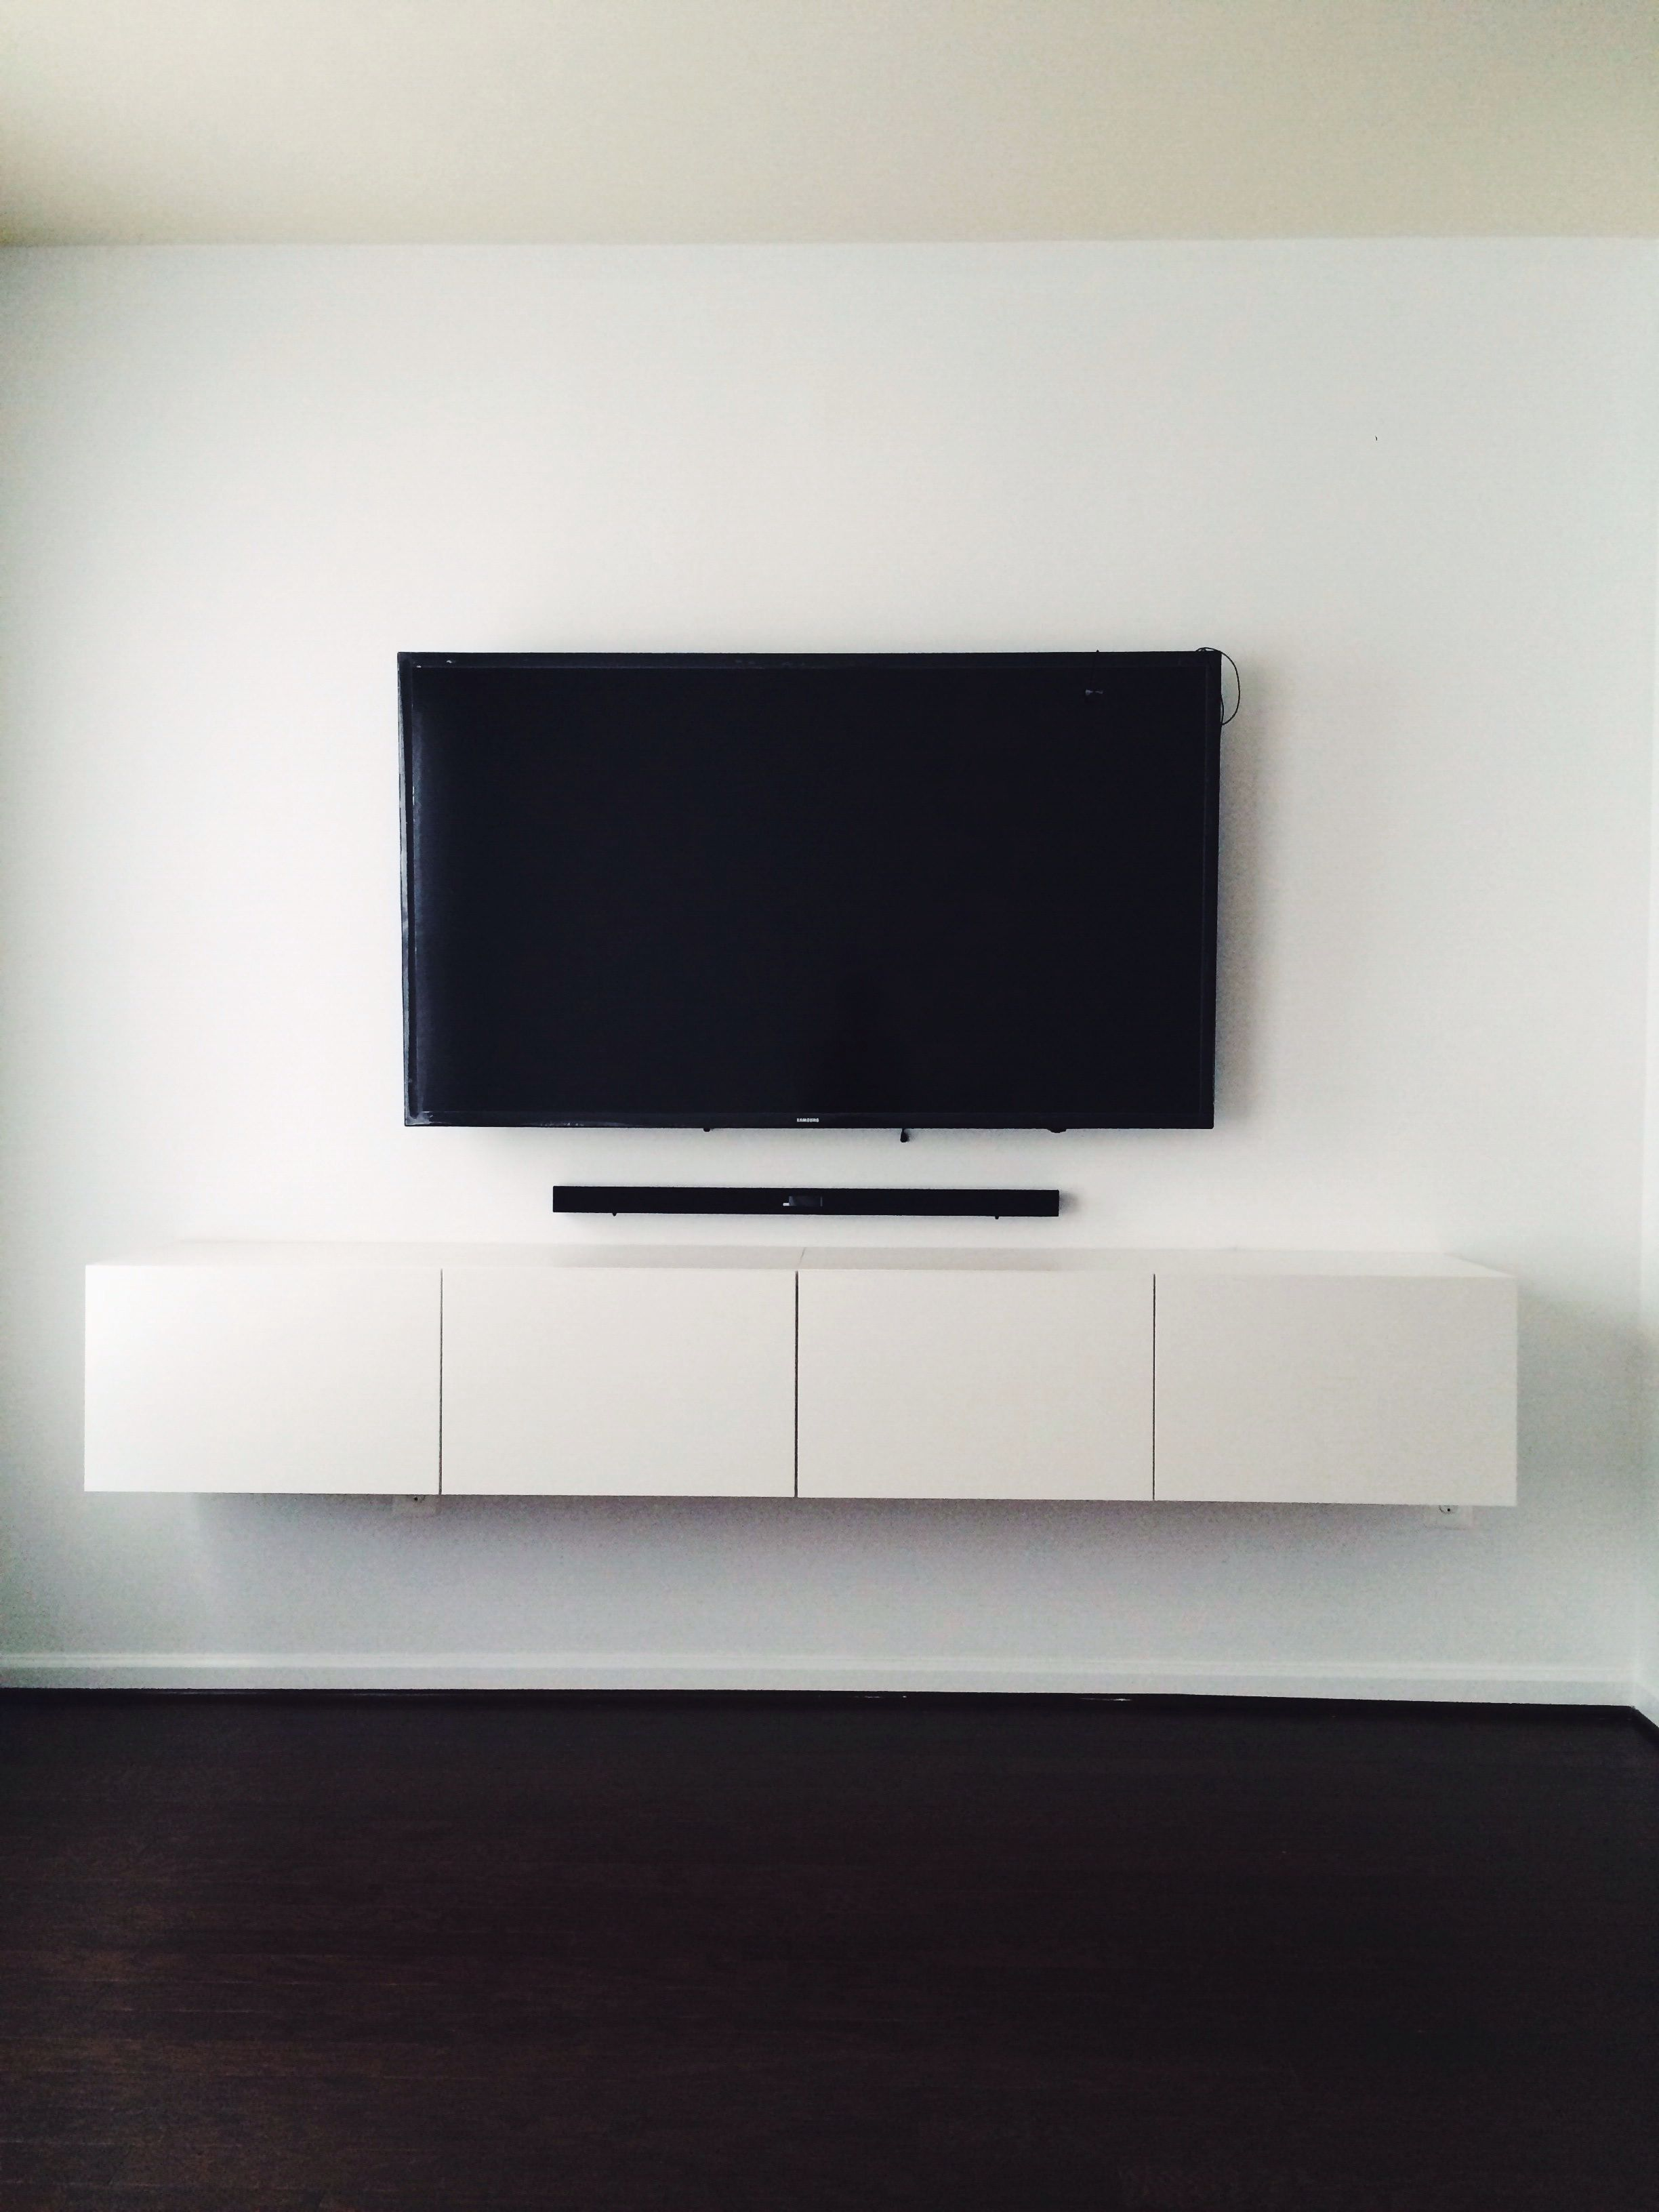 IKEA BEST media console. Mounted tv with hidden wires. Now that's clean.